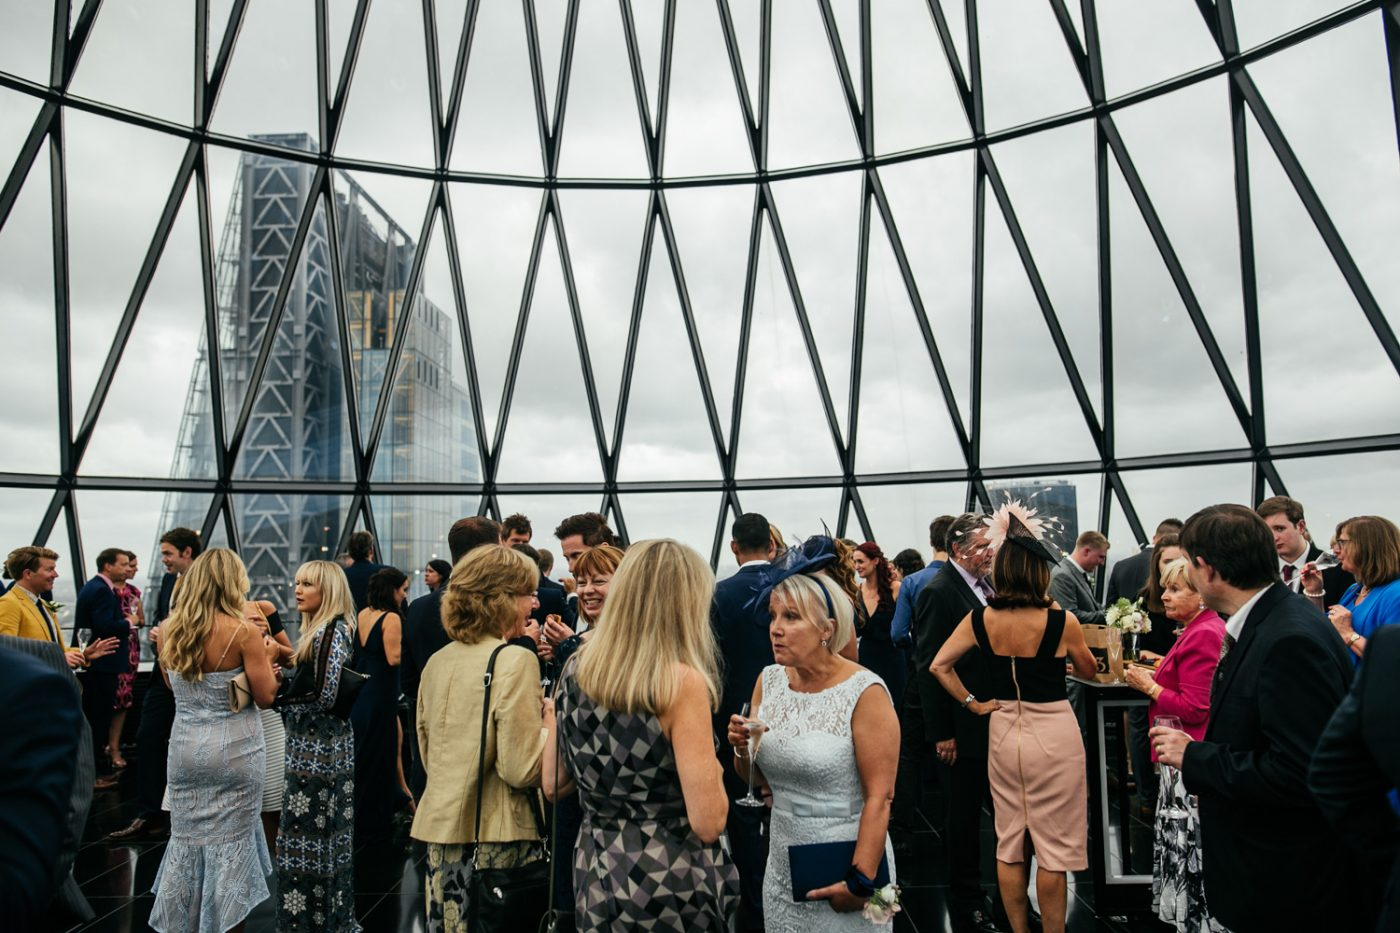 Searcys at The Gherkin Wedding Venue